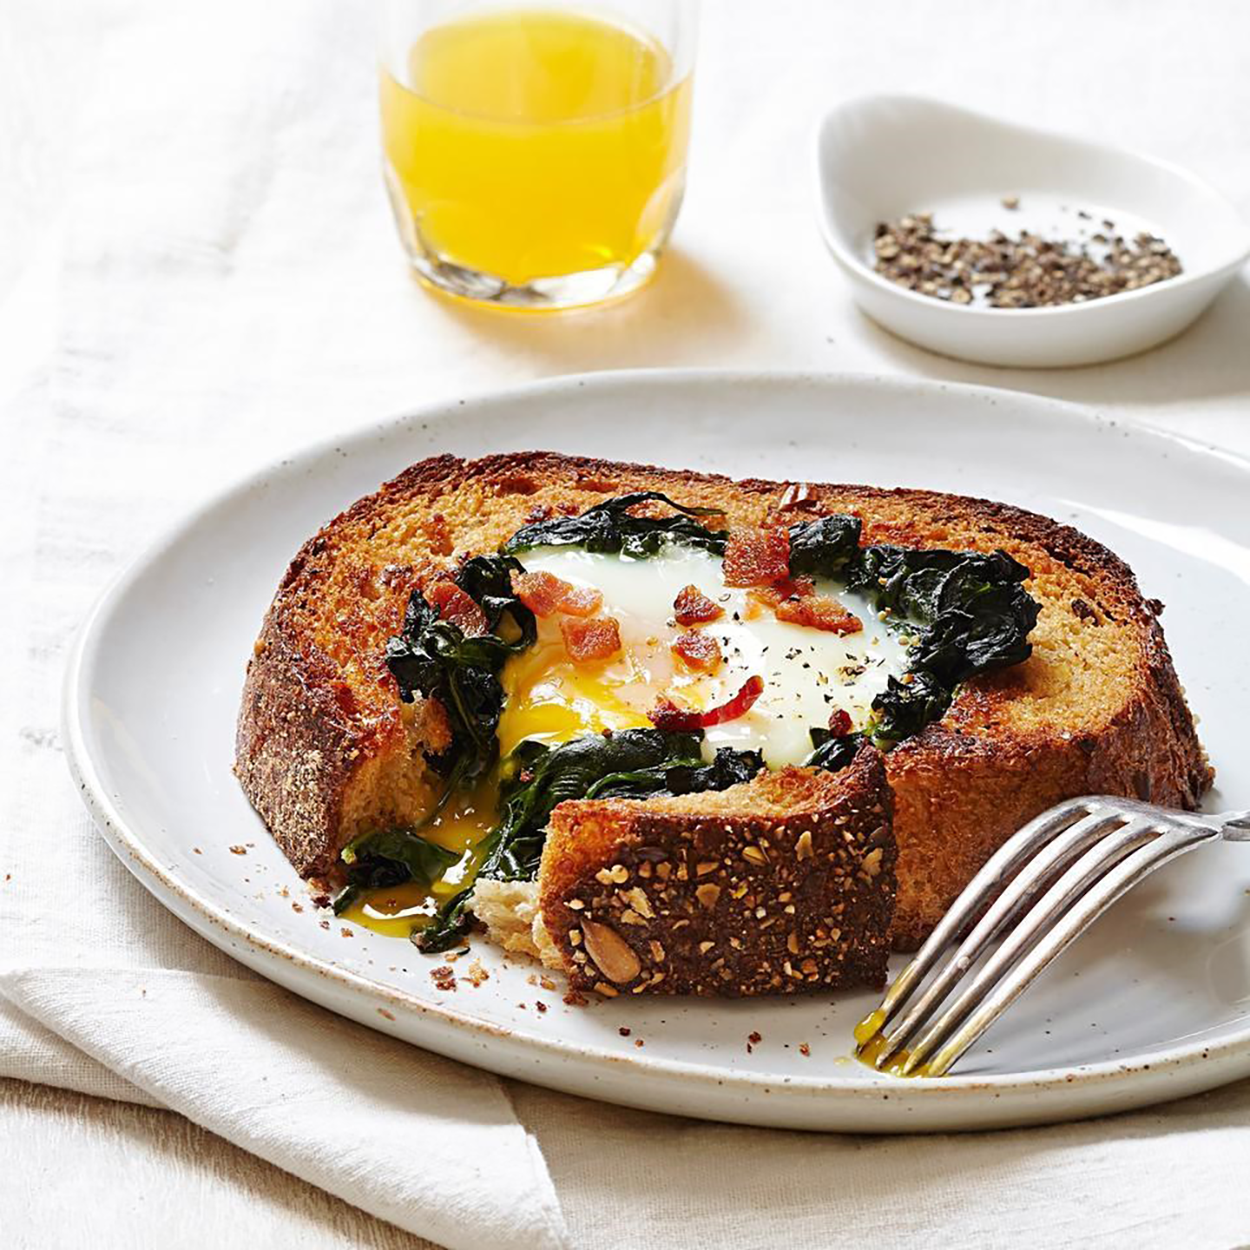 This traditional breakfast dish is elevated with festive green spinach and savory bacon for a Christmas-worthy meal.